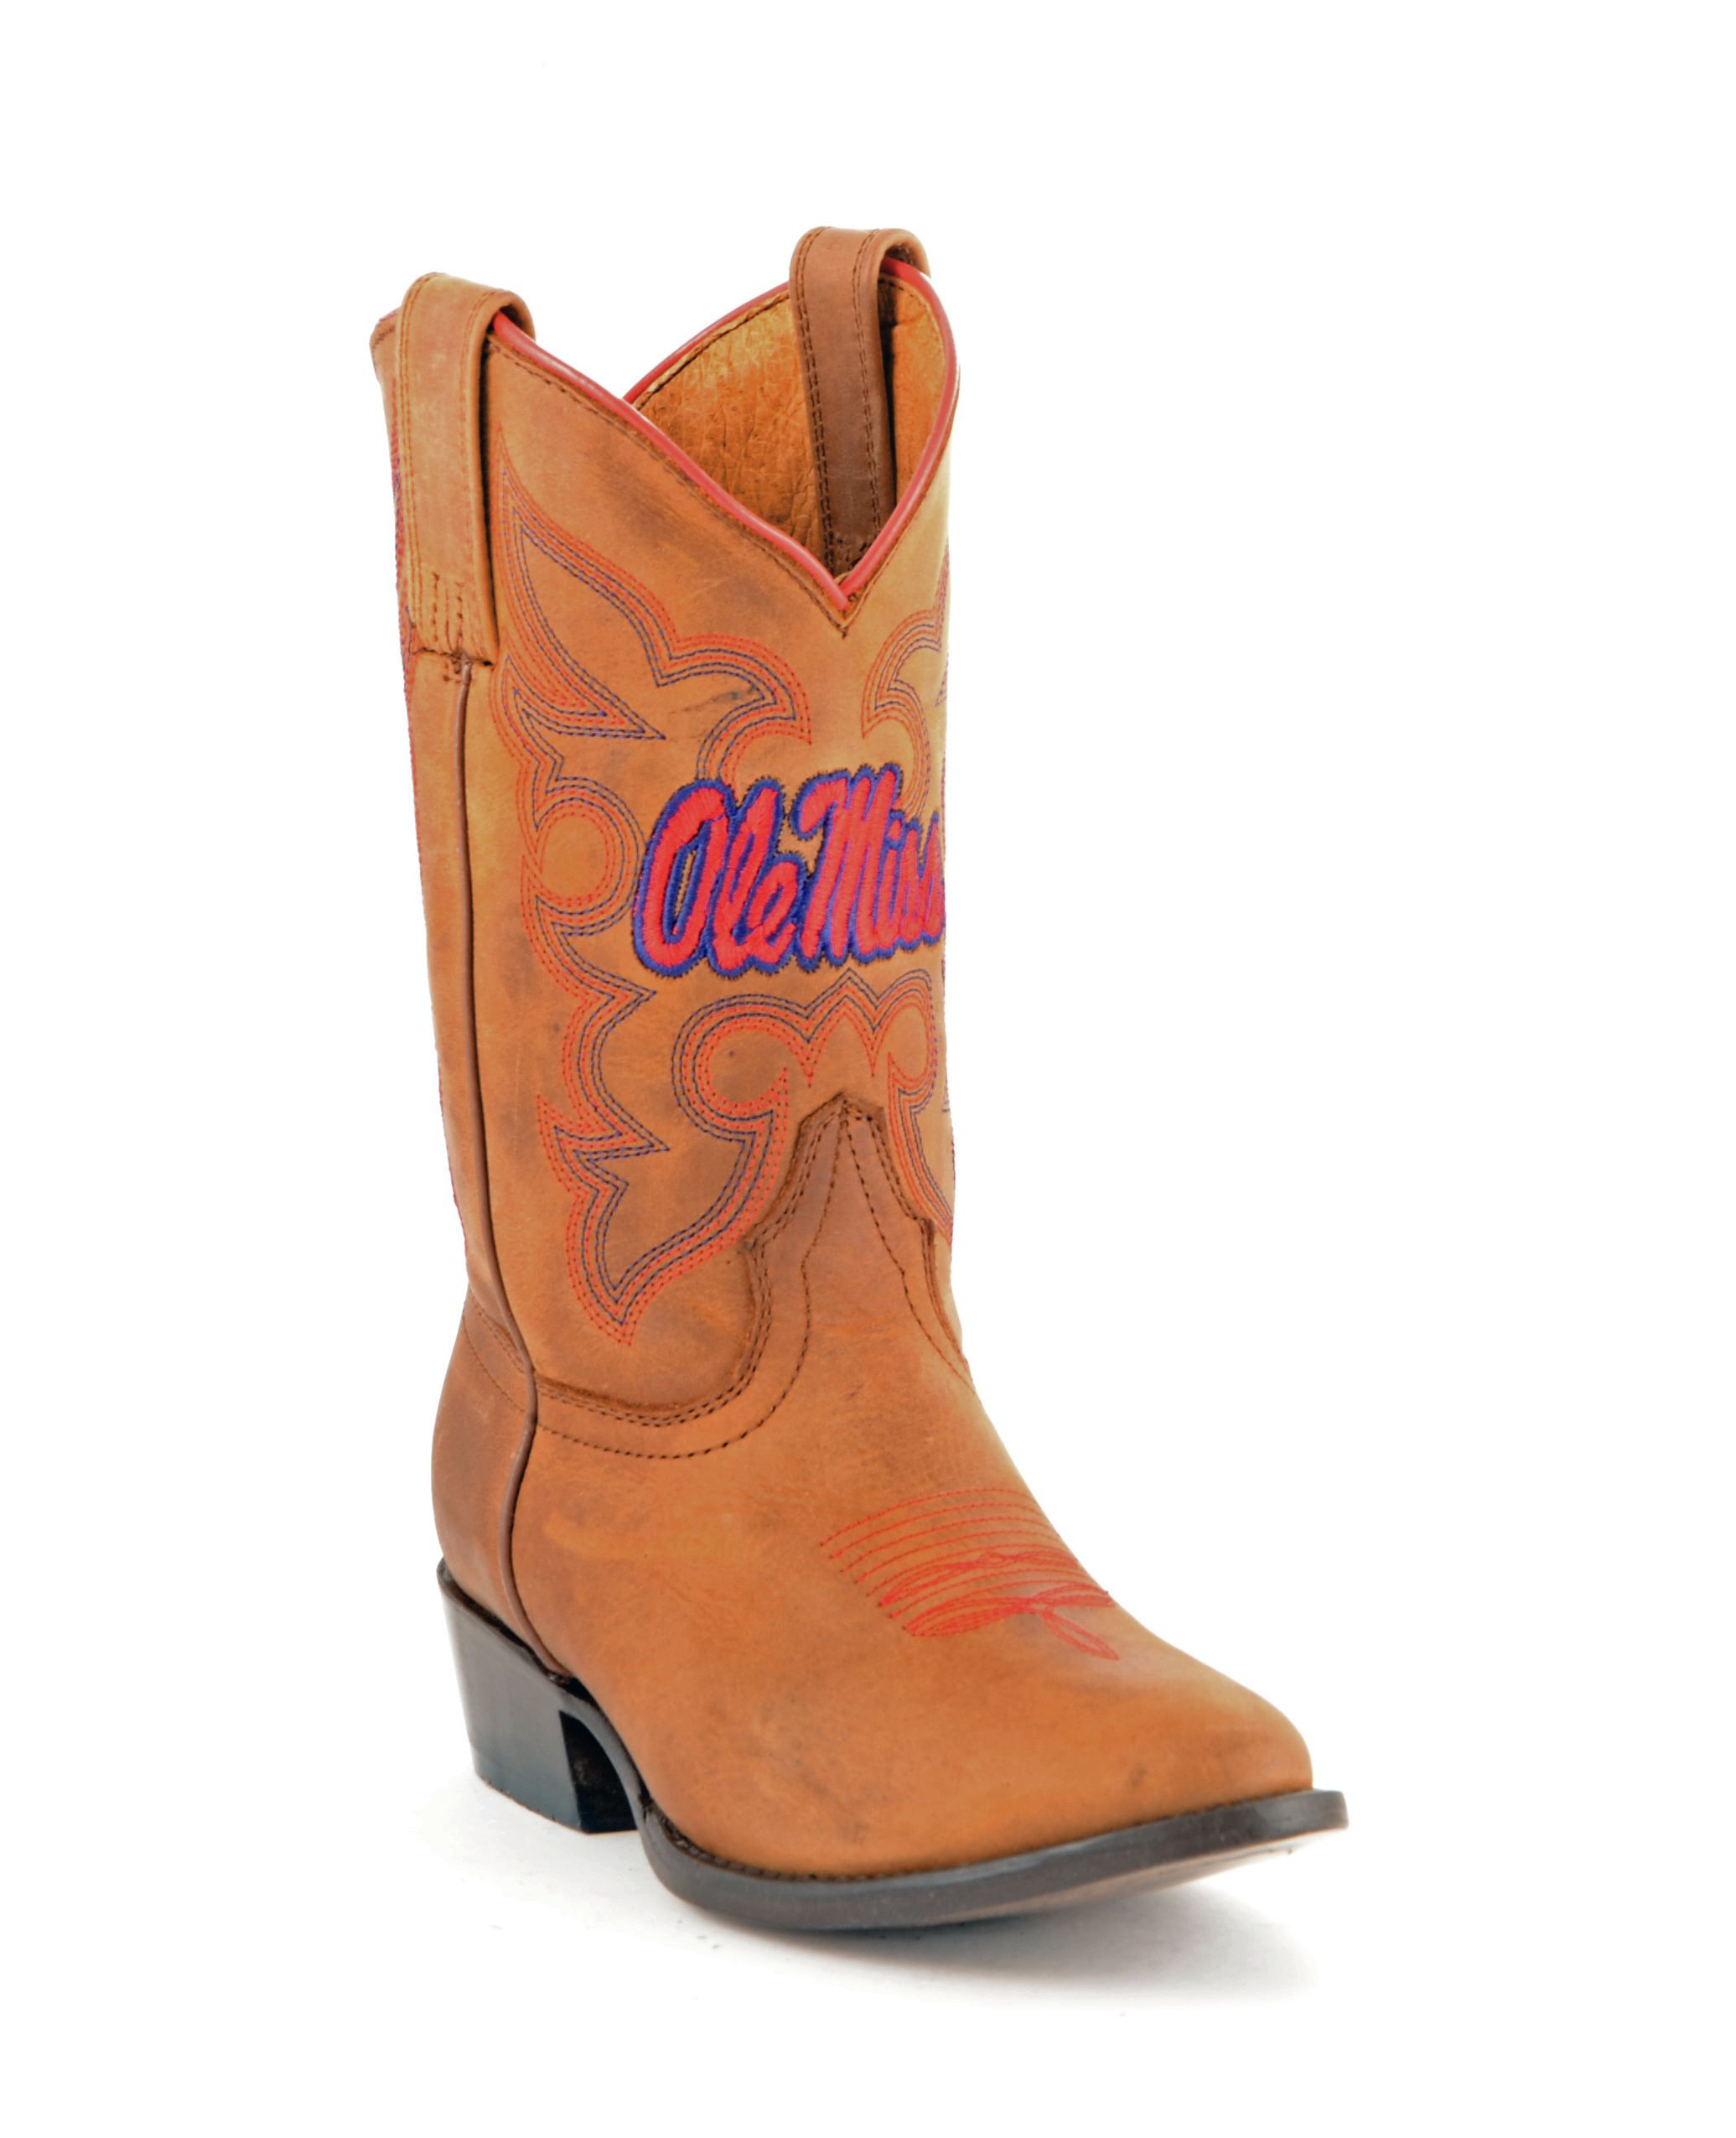 Gameday New Boys Honey Leather University of Mississippi Cowboy Boots by GameDay Boots